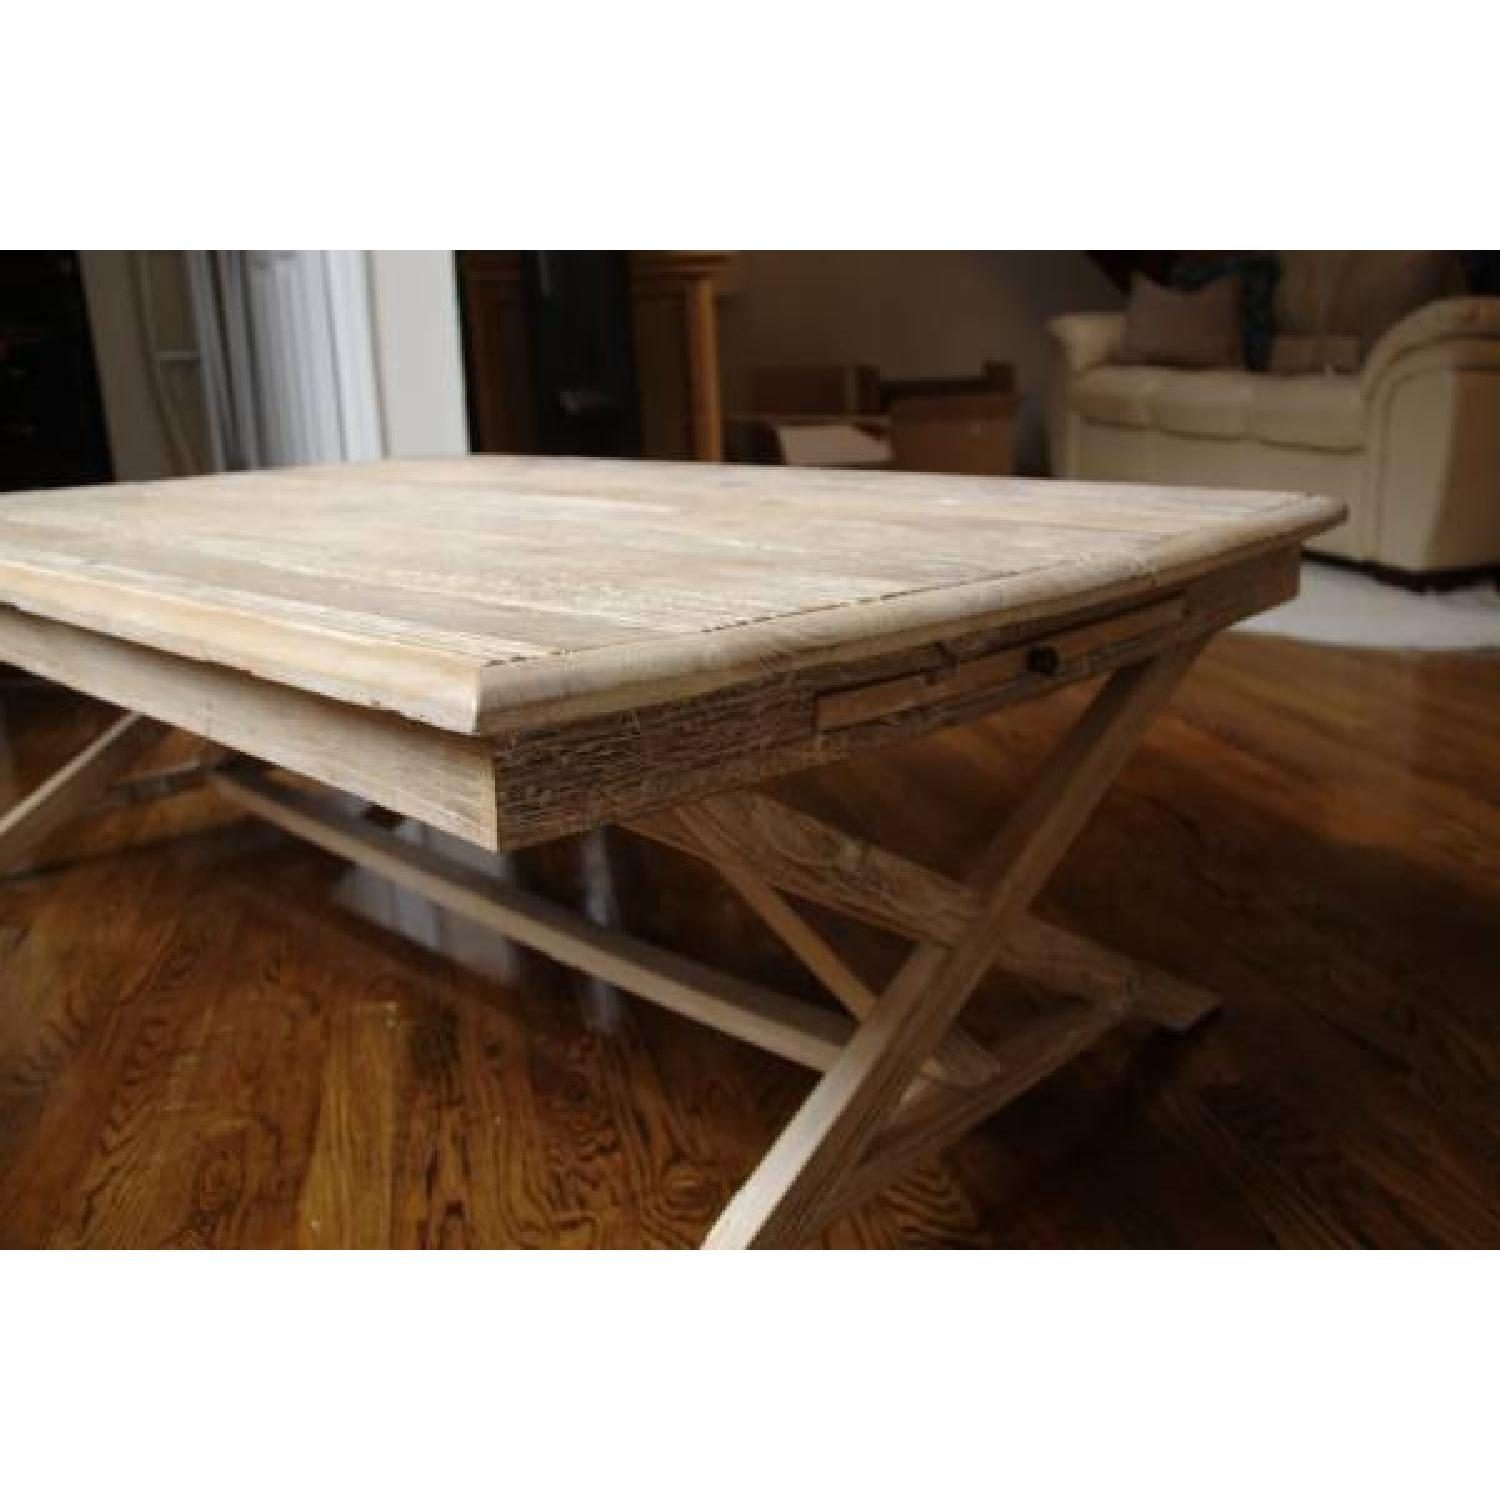 ABC Carpet & Home Handcrafted Coffee Table - image-3